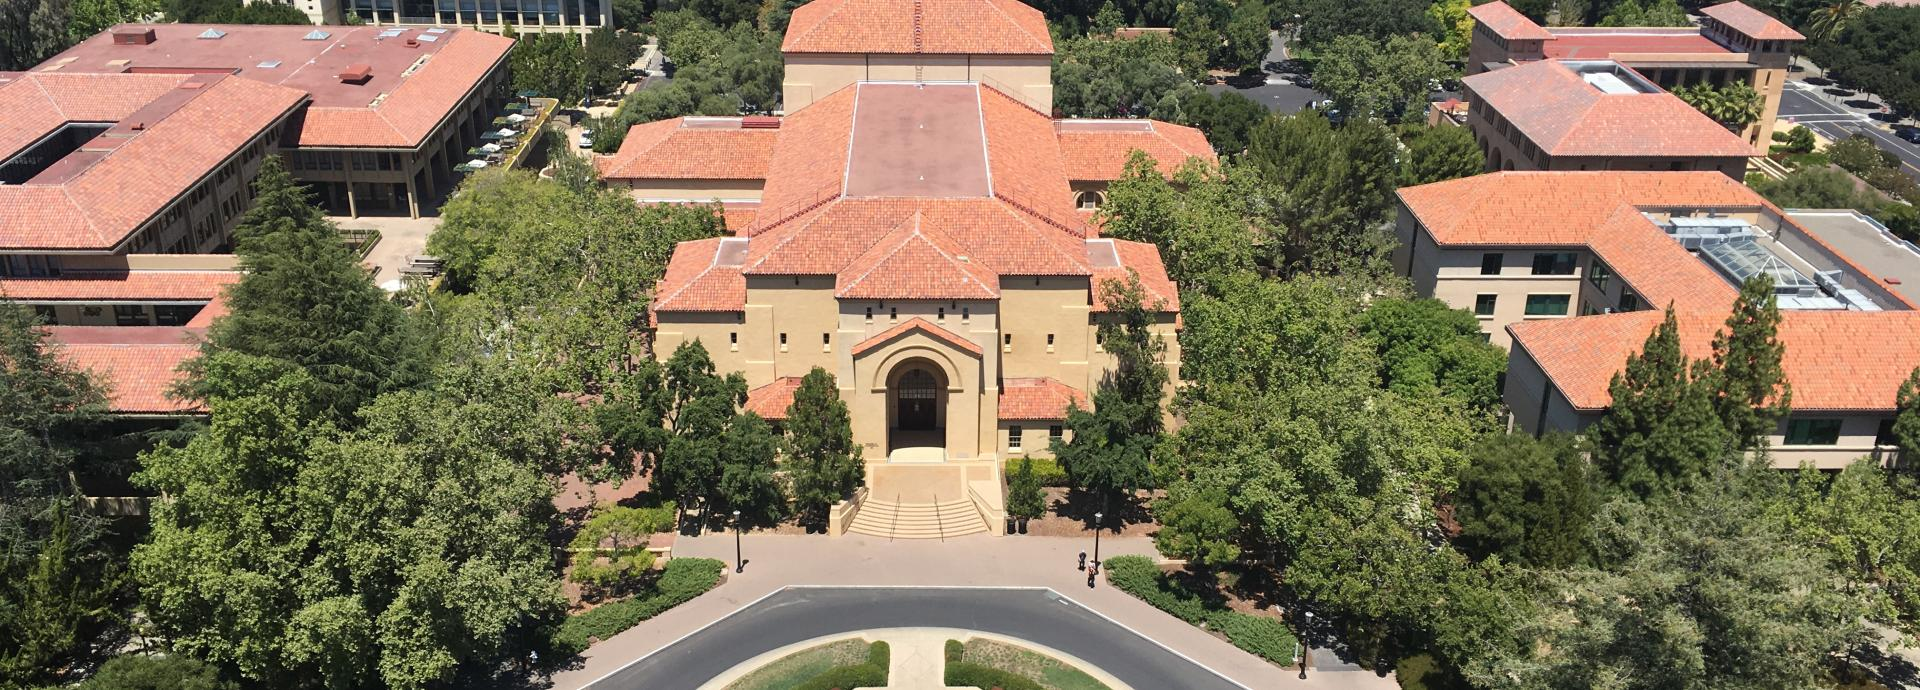 A photo of Stanford University campus in the U.S.